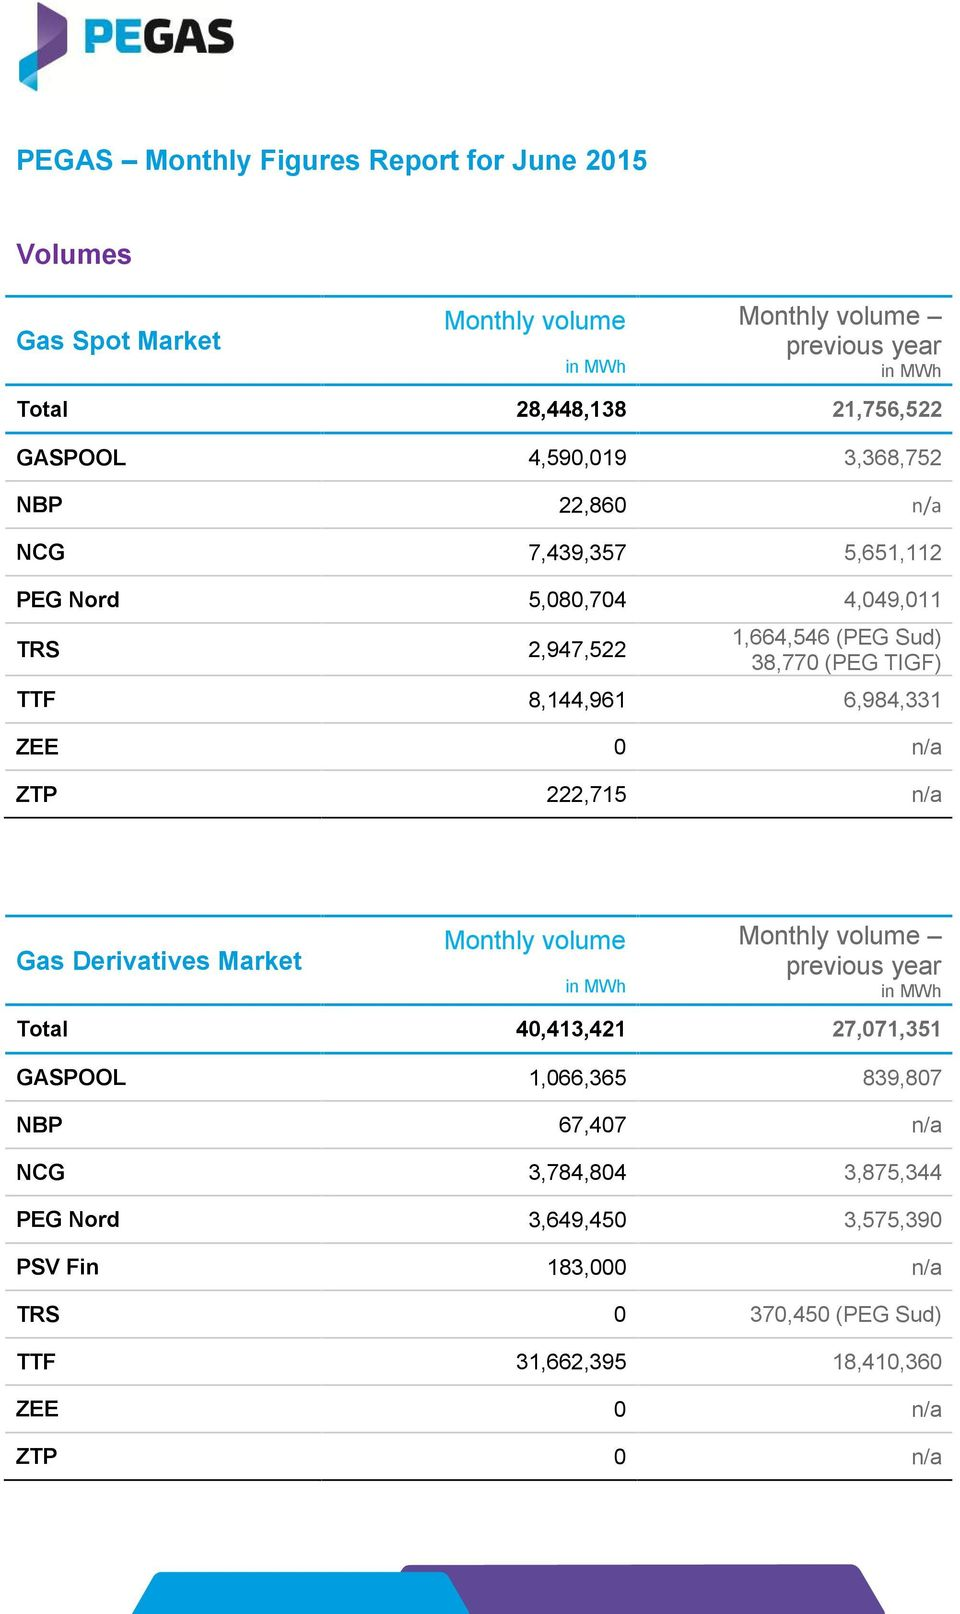 6,984,331 ZEE 0 n/a ZTP 222,715 n/a Gas Derivatives Market Monthly volume Monthly volume previous year Total 40,413,421 27,071,351 GASPOOL 1,066,365